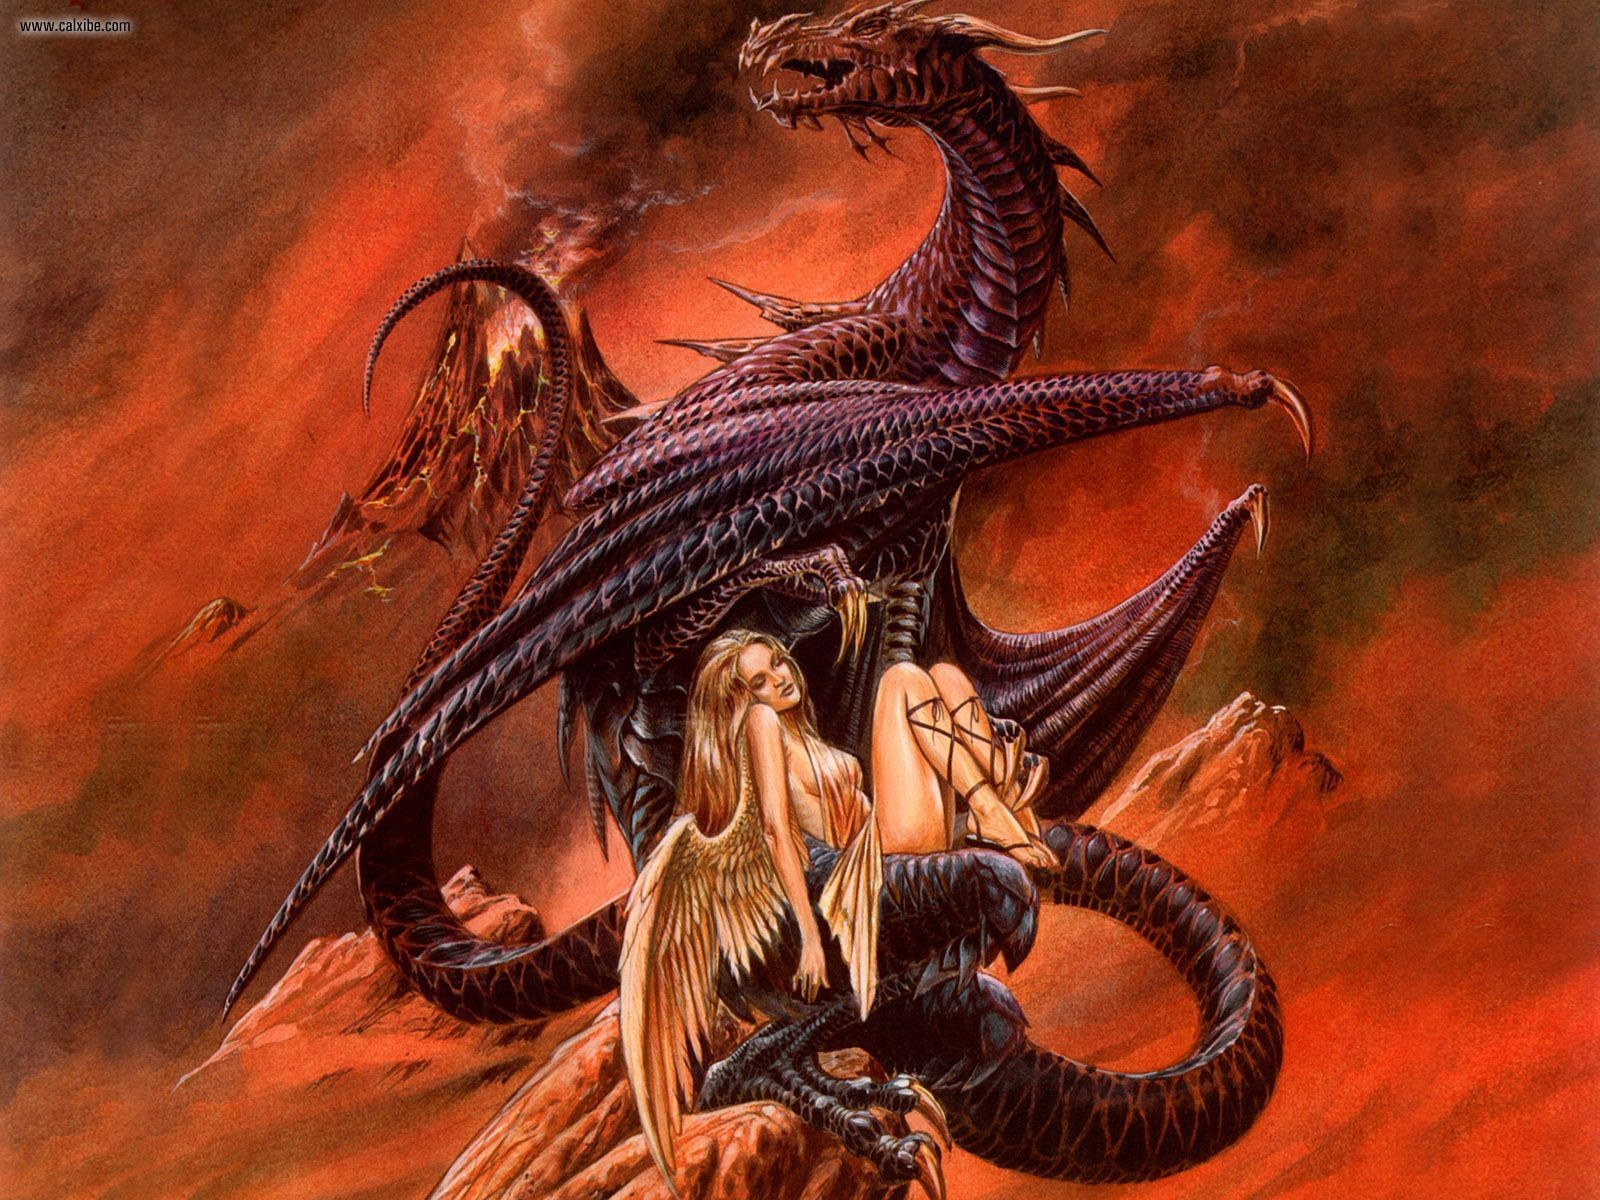 Fantasy sex with dragons